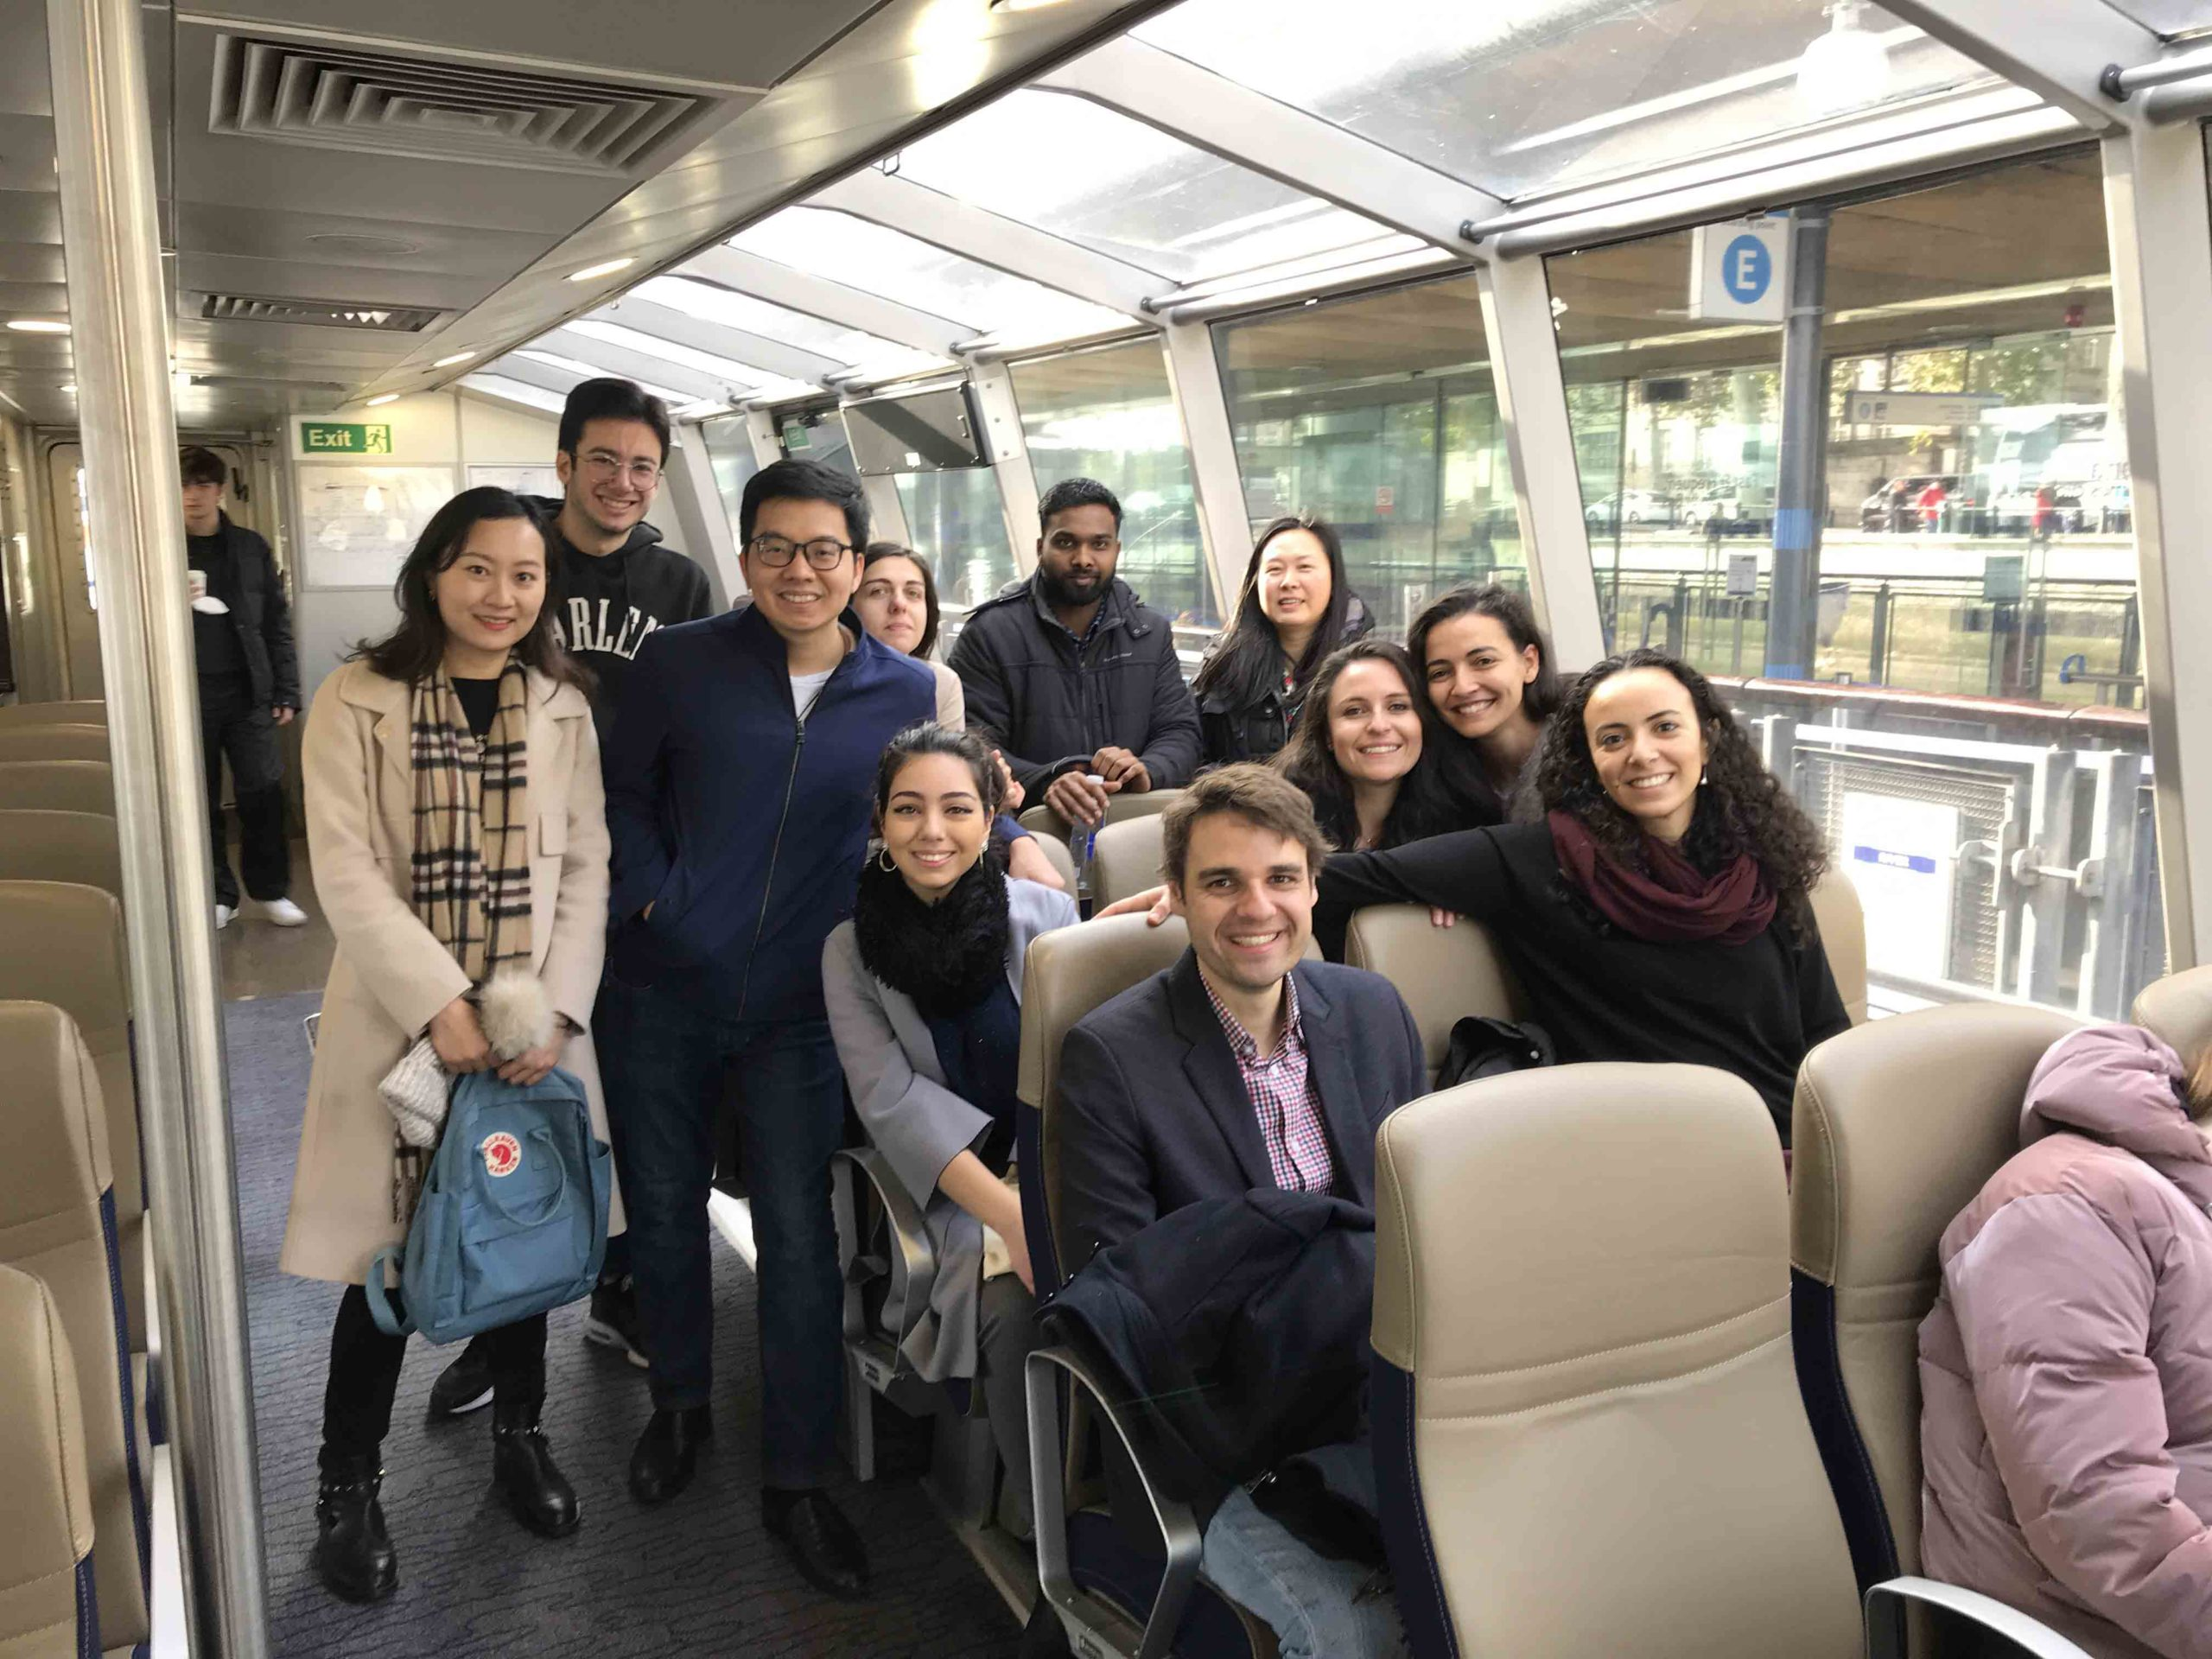 A group photo with international students during a walking tour of Greenwich as a part of Birkbeck One World Festival 2019/20